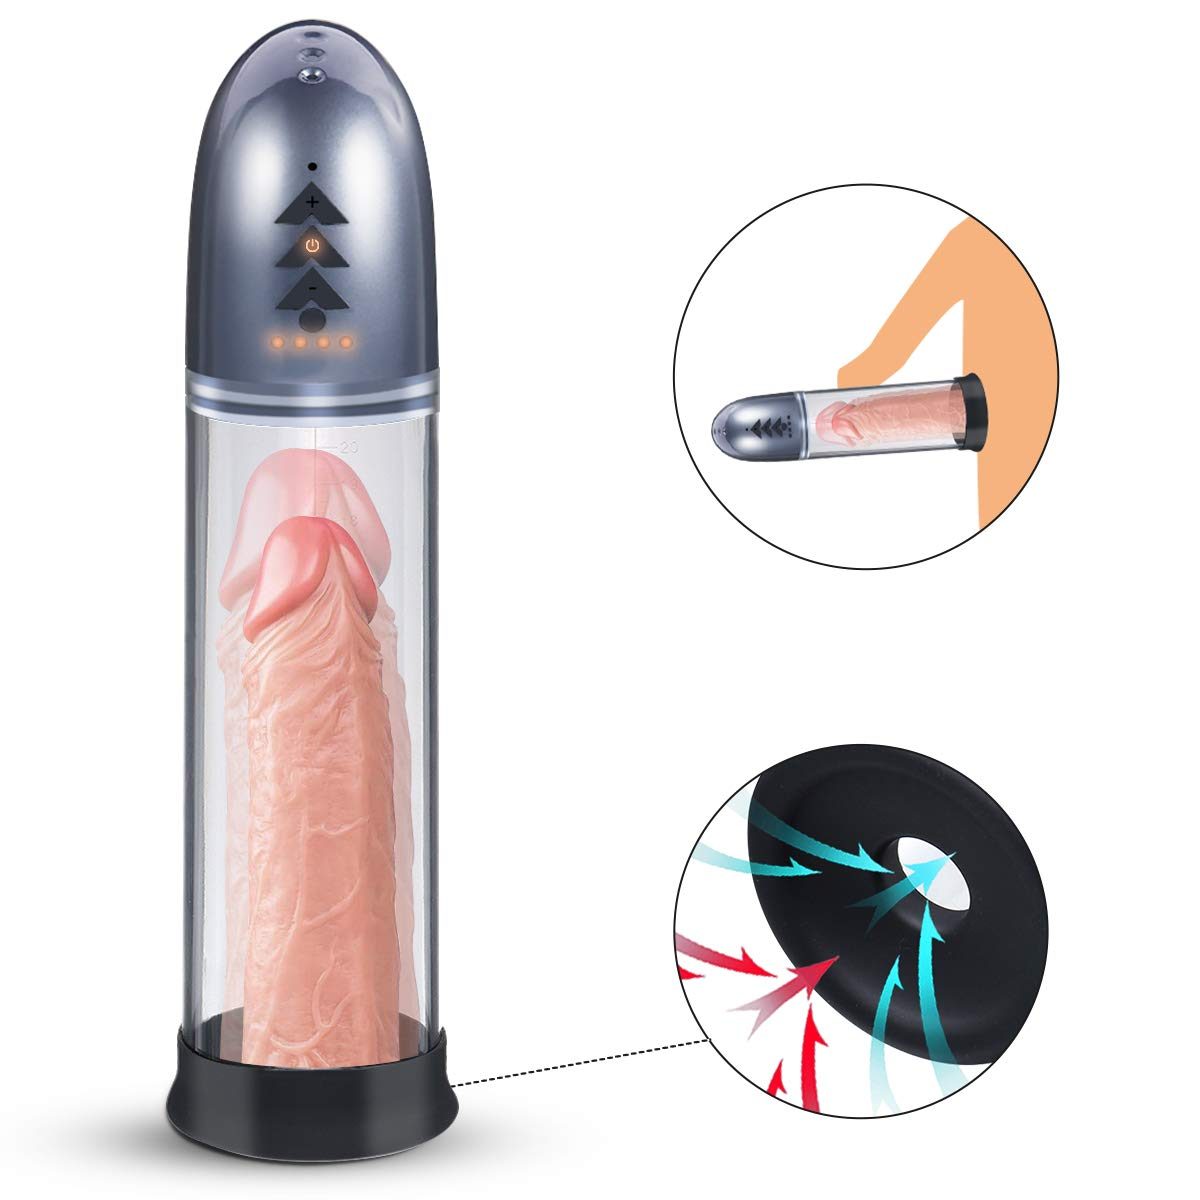 Automatic Penis Vacuum Pump for Men, Fovel Cock Enlarger with 4 Suction Intensities for Stronger Bigger Erections Improve, Rechargeable Male Enhancing Masturbator Sex Toy with Cylinder & Scale by Fovel